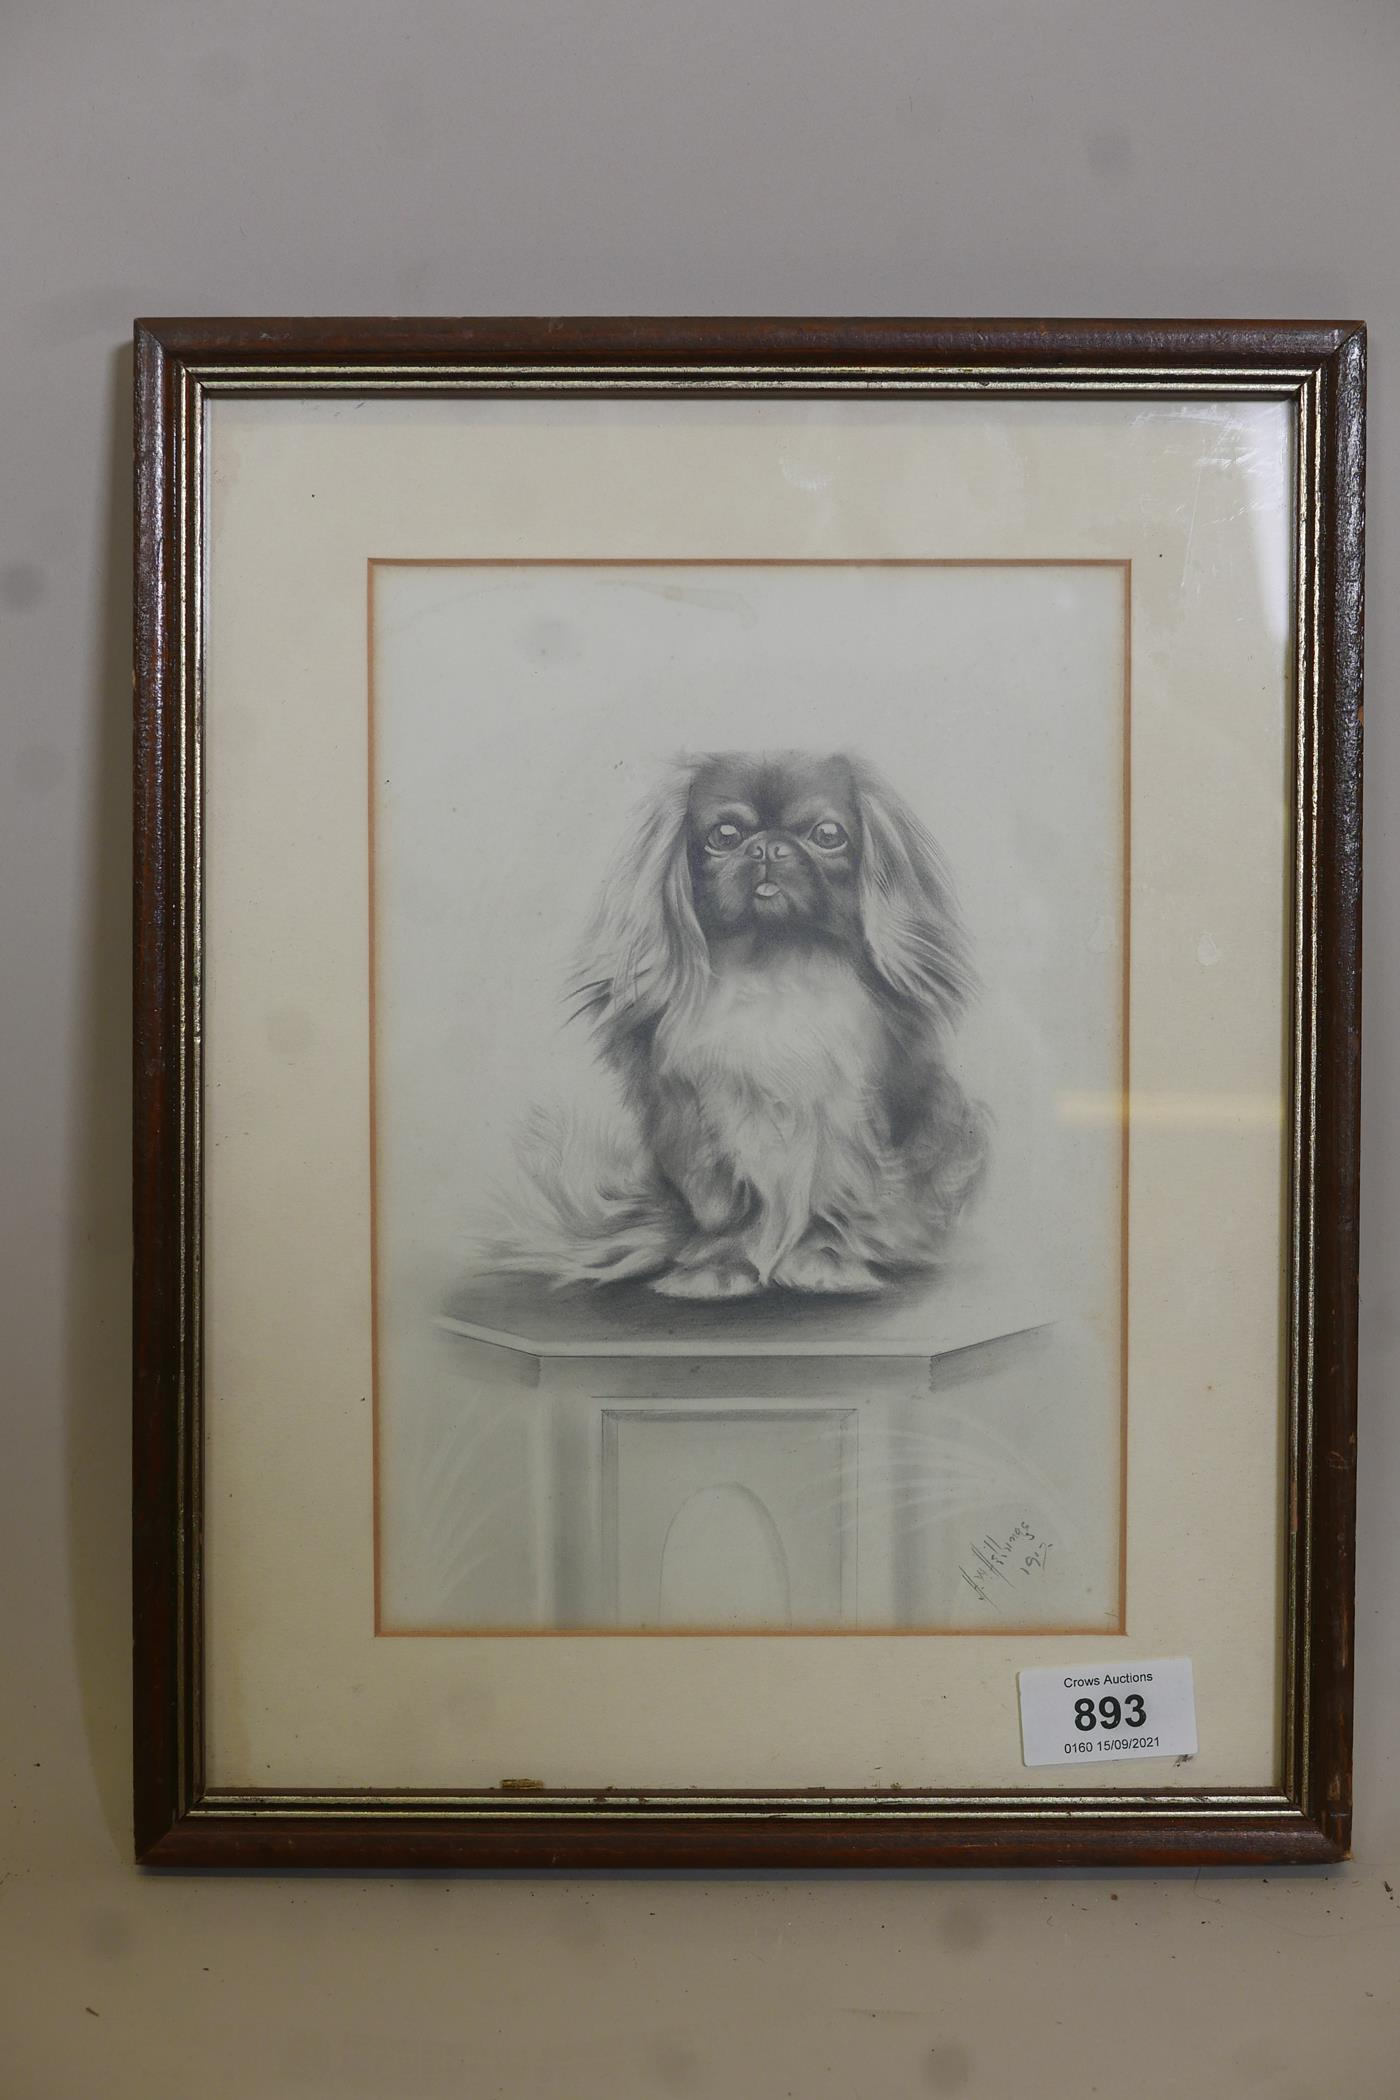 """H.W. Hellings, portrait of a Pekinese dog, signed and dated 1917, pencil drawing, 9"""" x 6"""" - Image 3 of 4"""